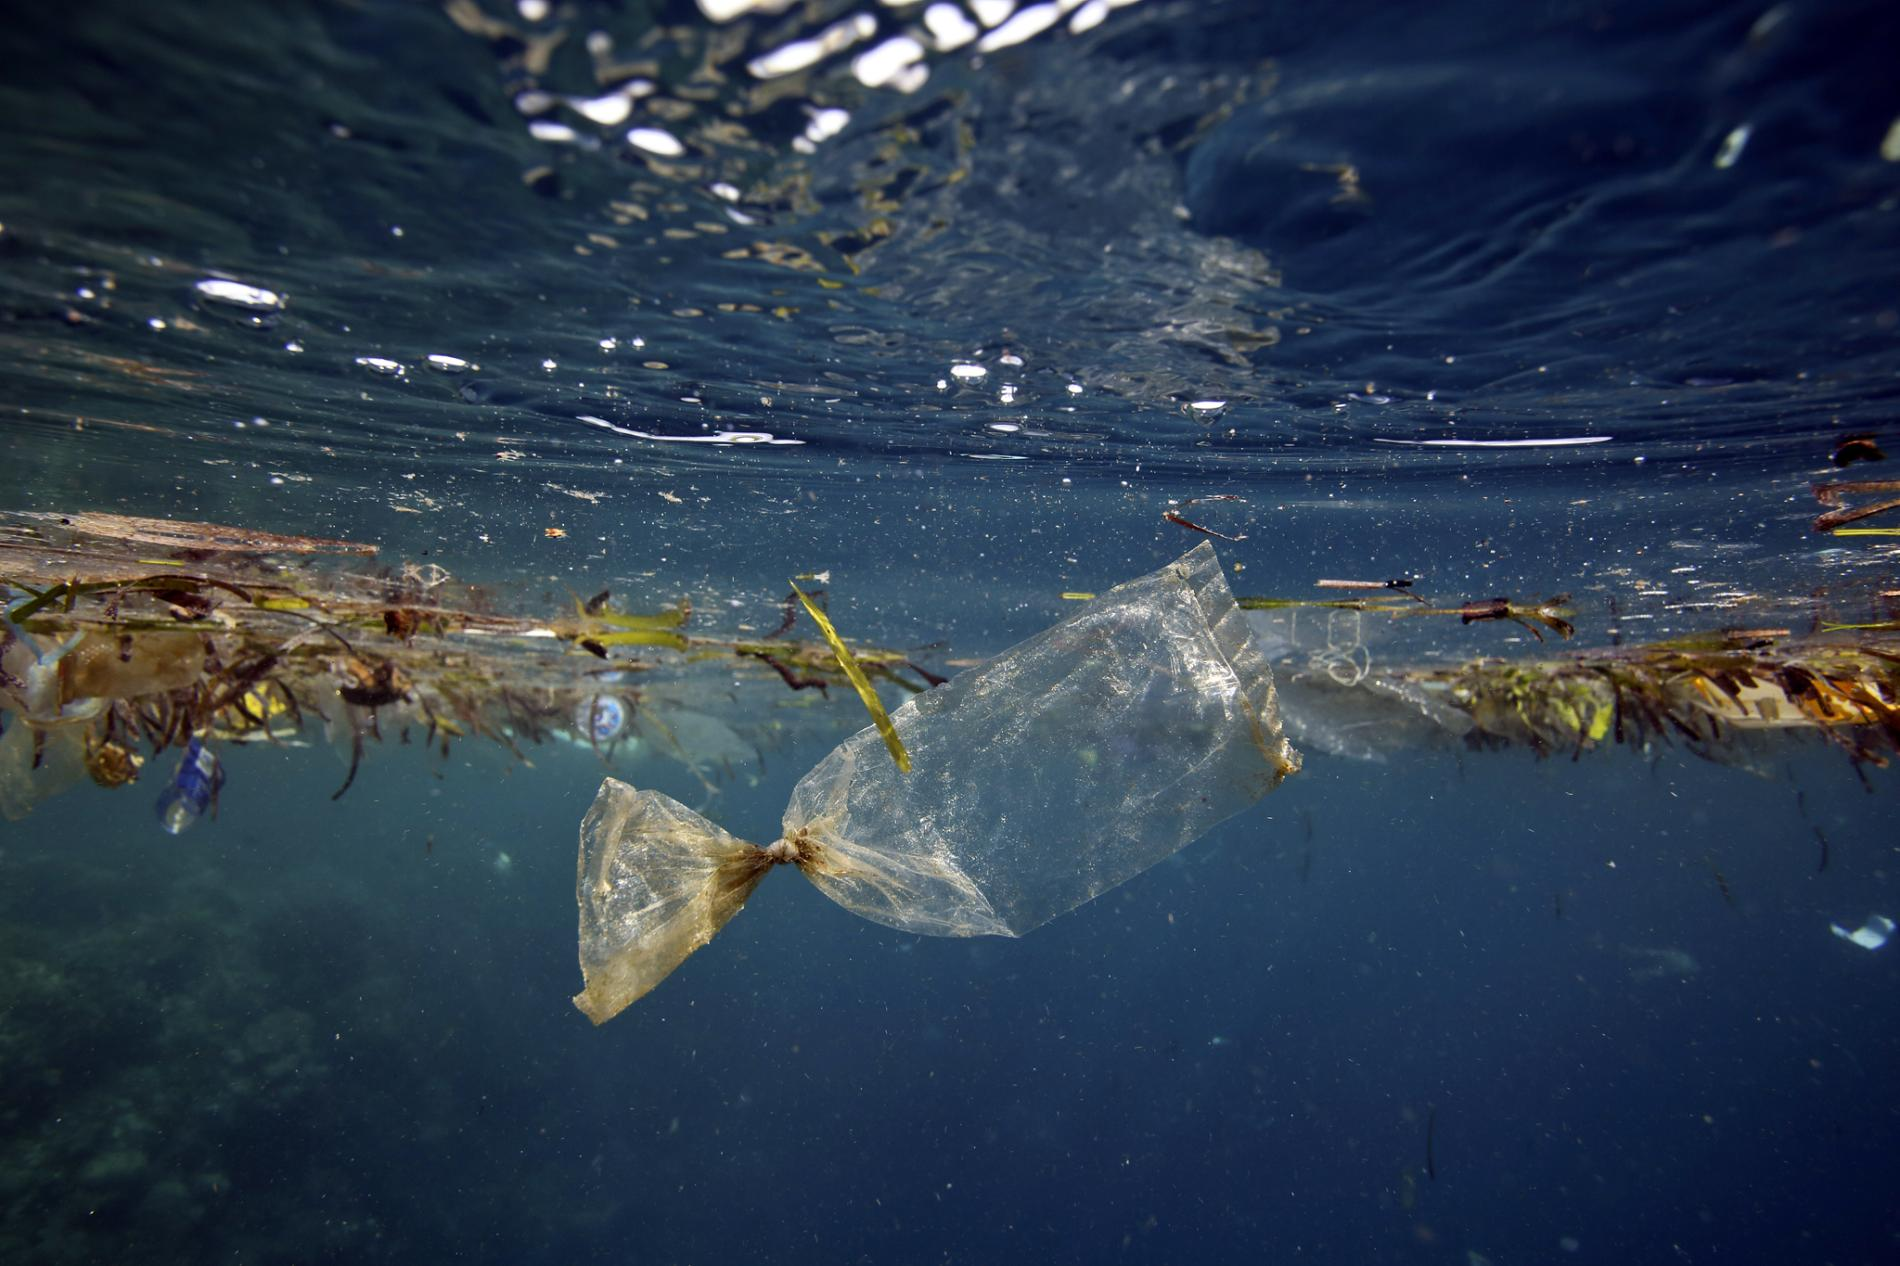 Plastic Floating in the Ocean - Paul Kennedy - GettyImages